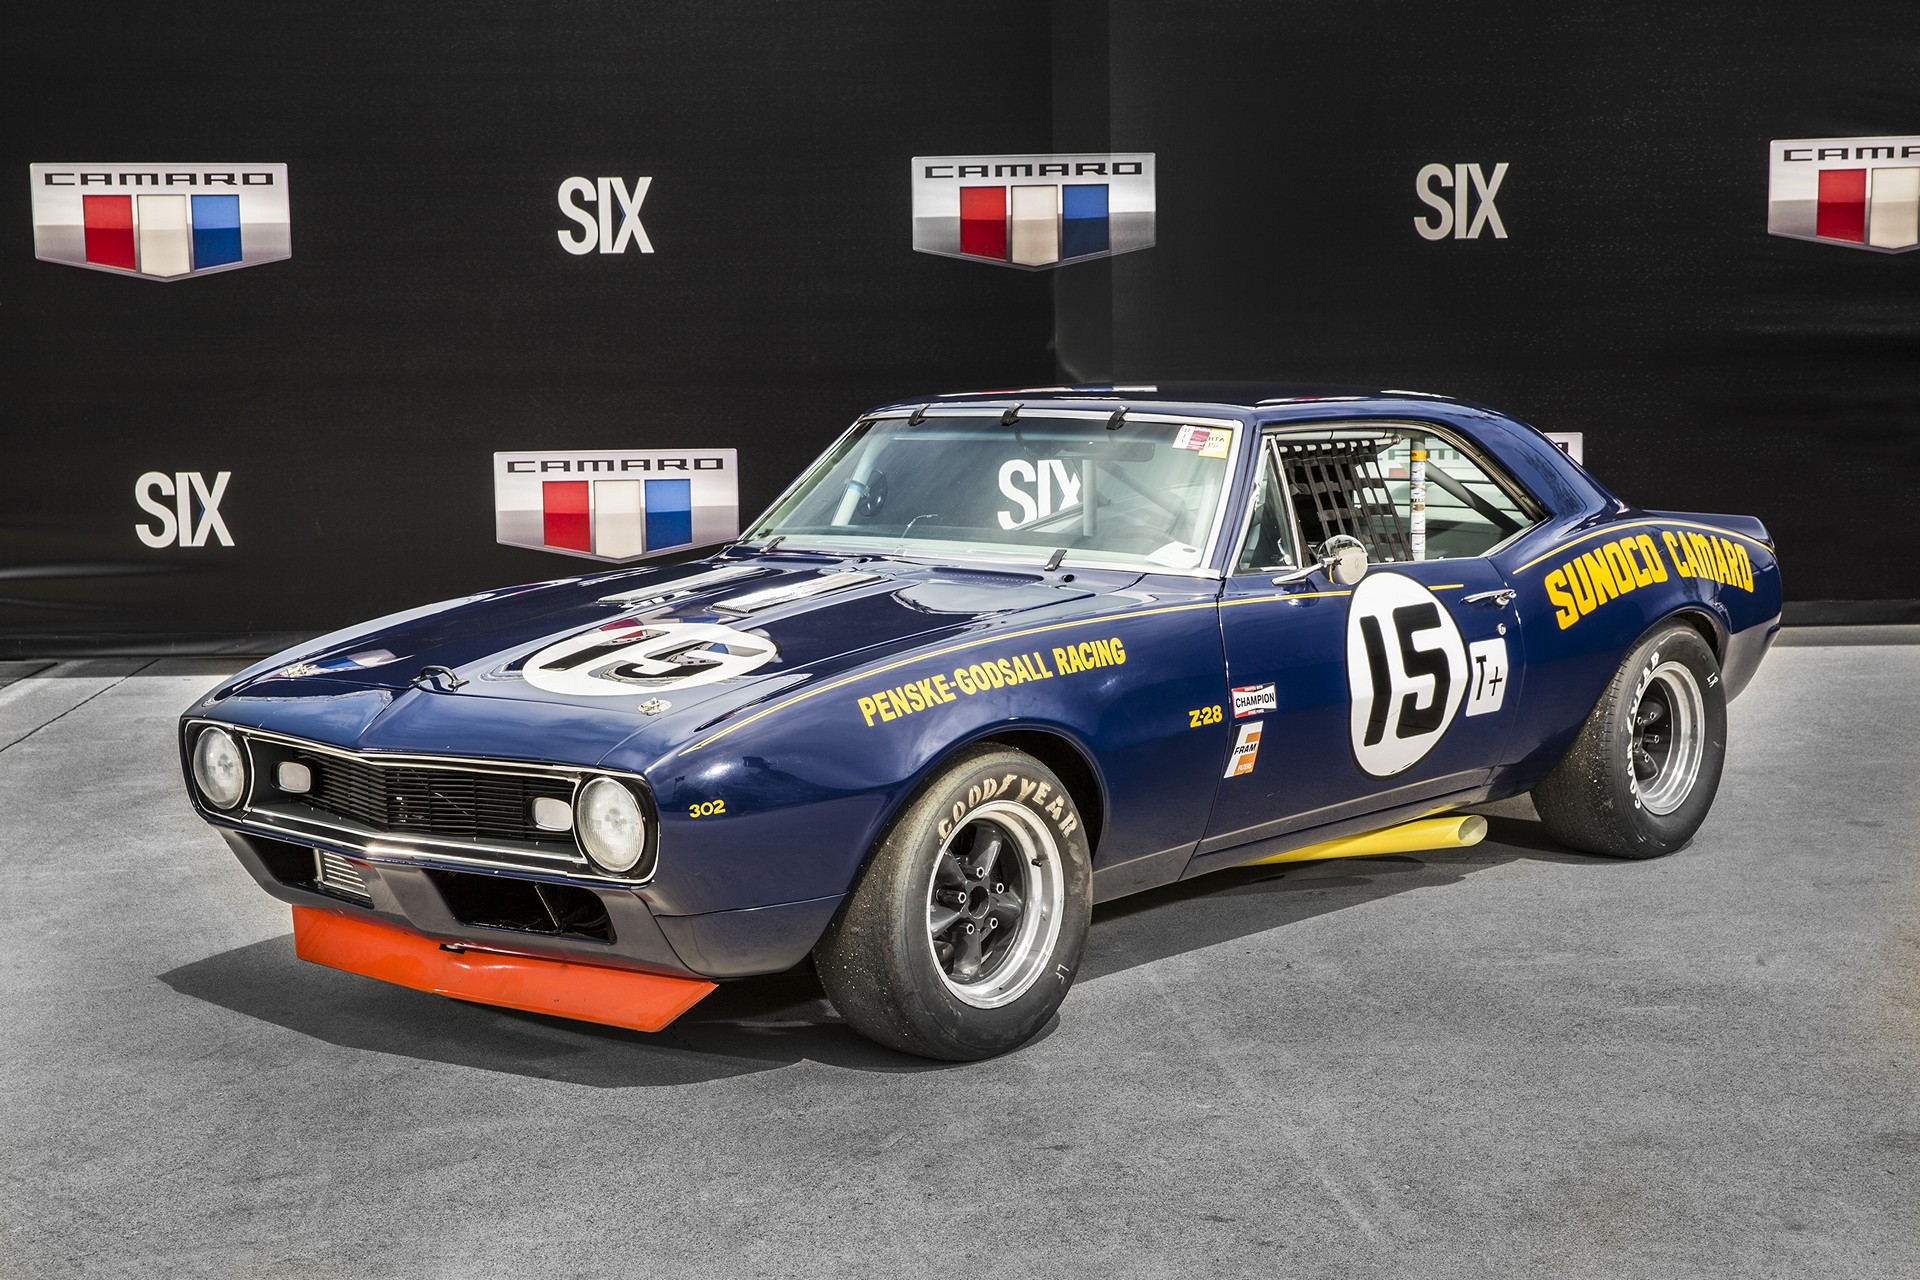 Camaro Trans Am >> 1967/1968 Chevrolet Camaro Z/28 Penske/Sunoco Race Car © General Motors - Carrrs Auto Portal